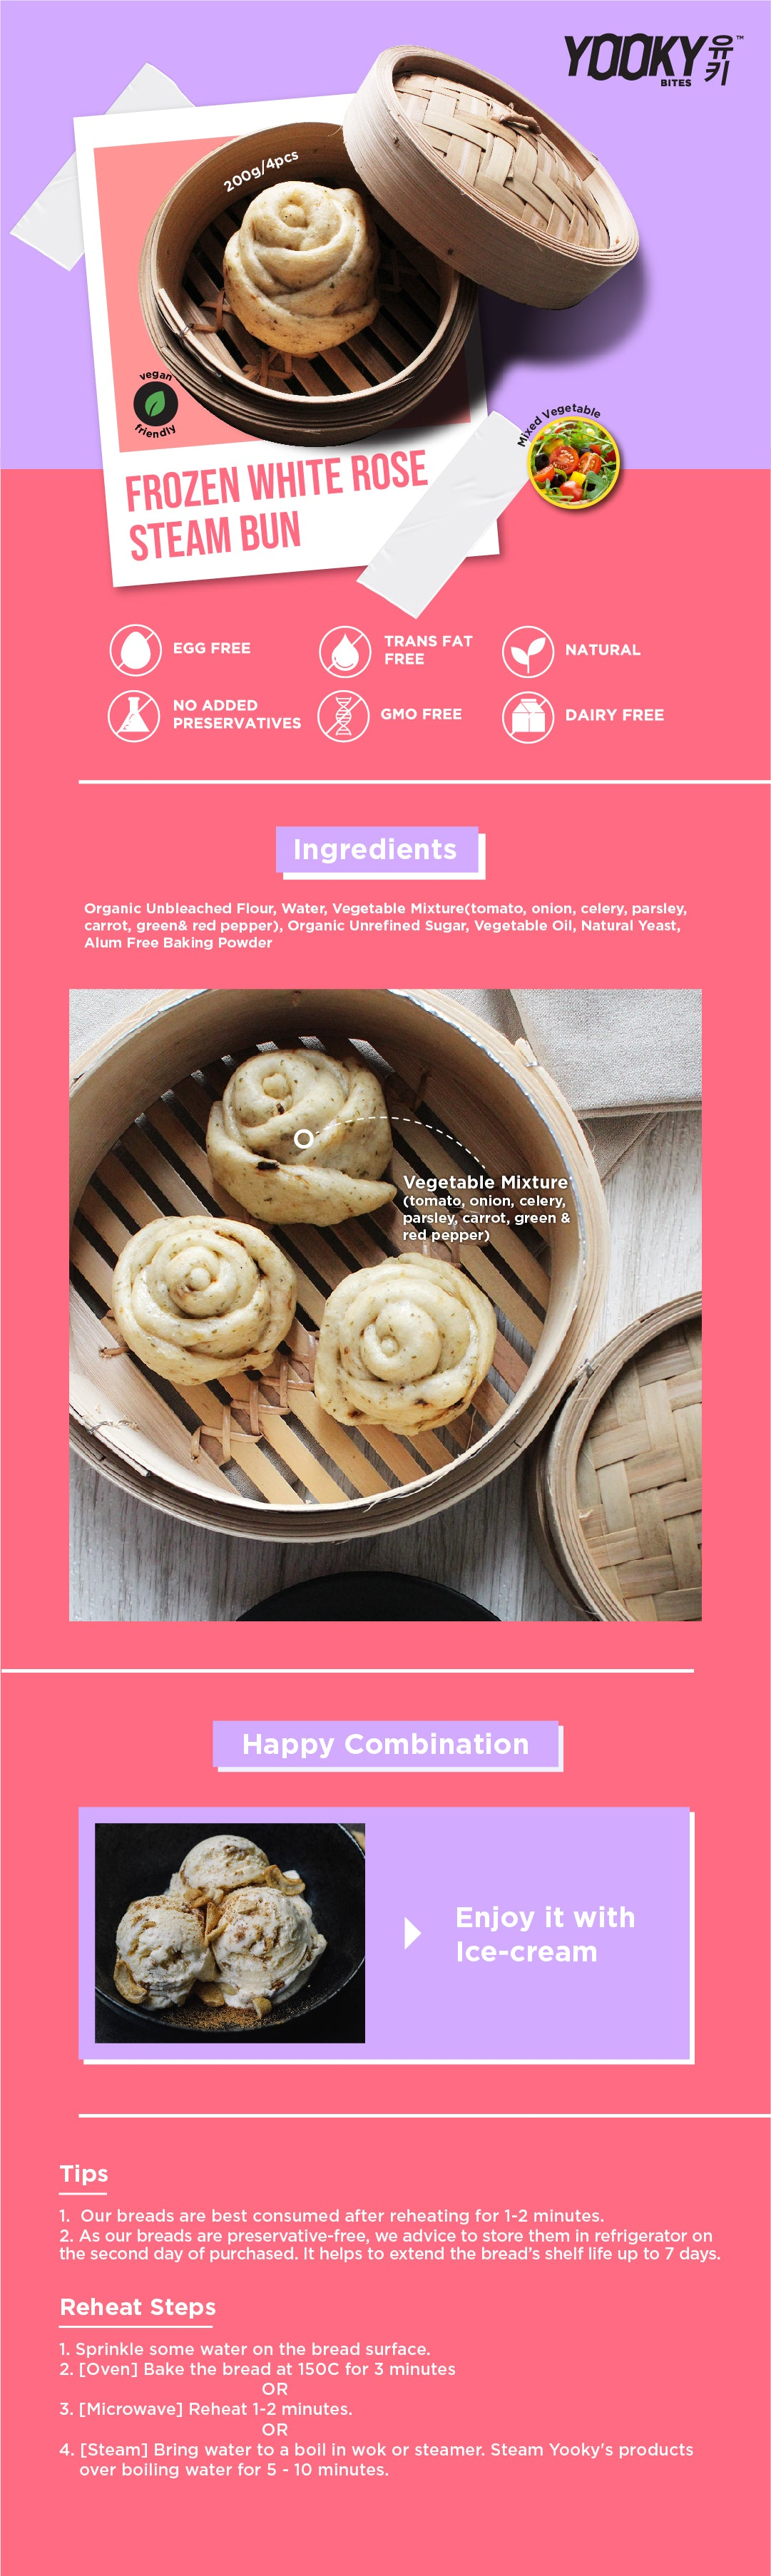 Frozen White Rose Steam Bun Product Description